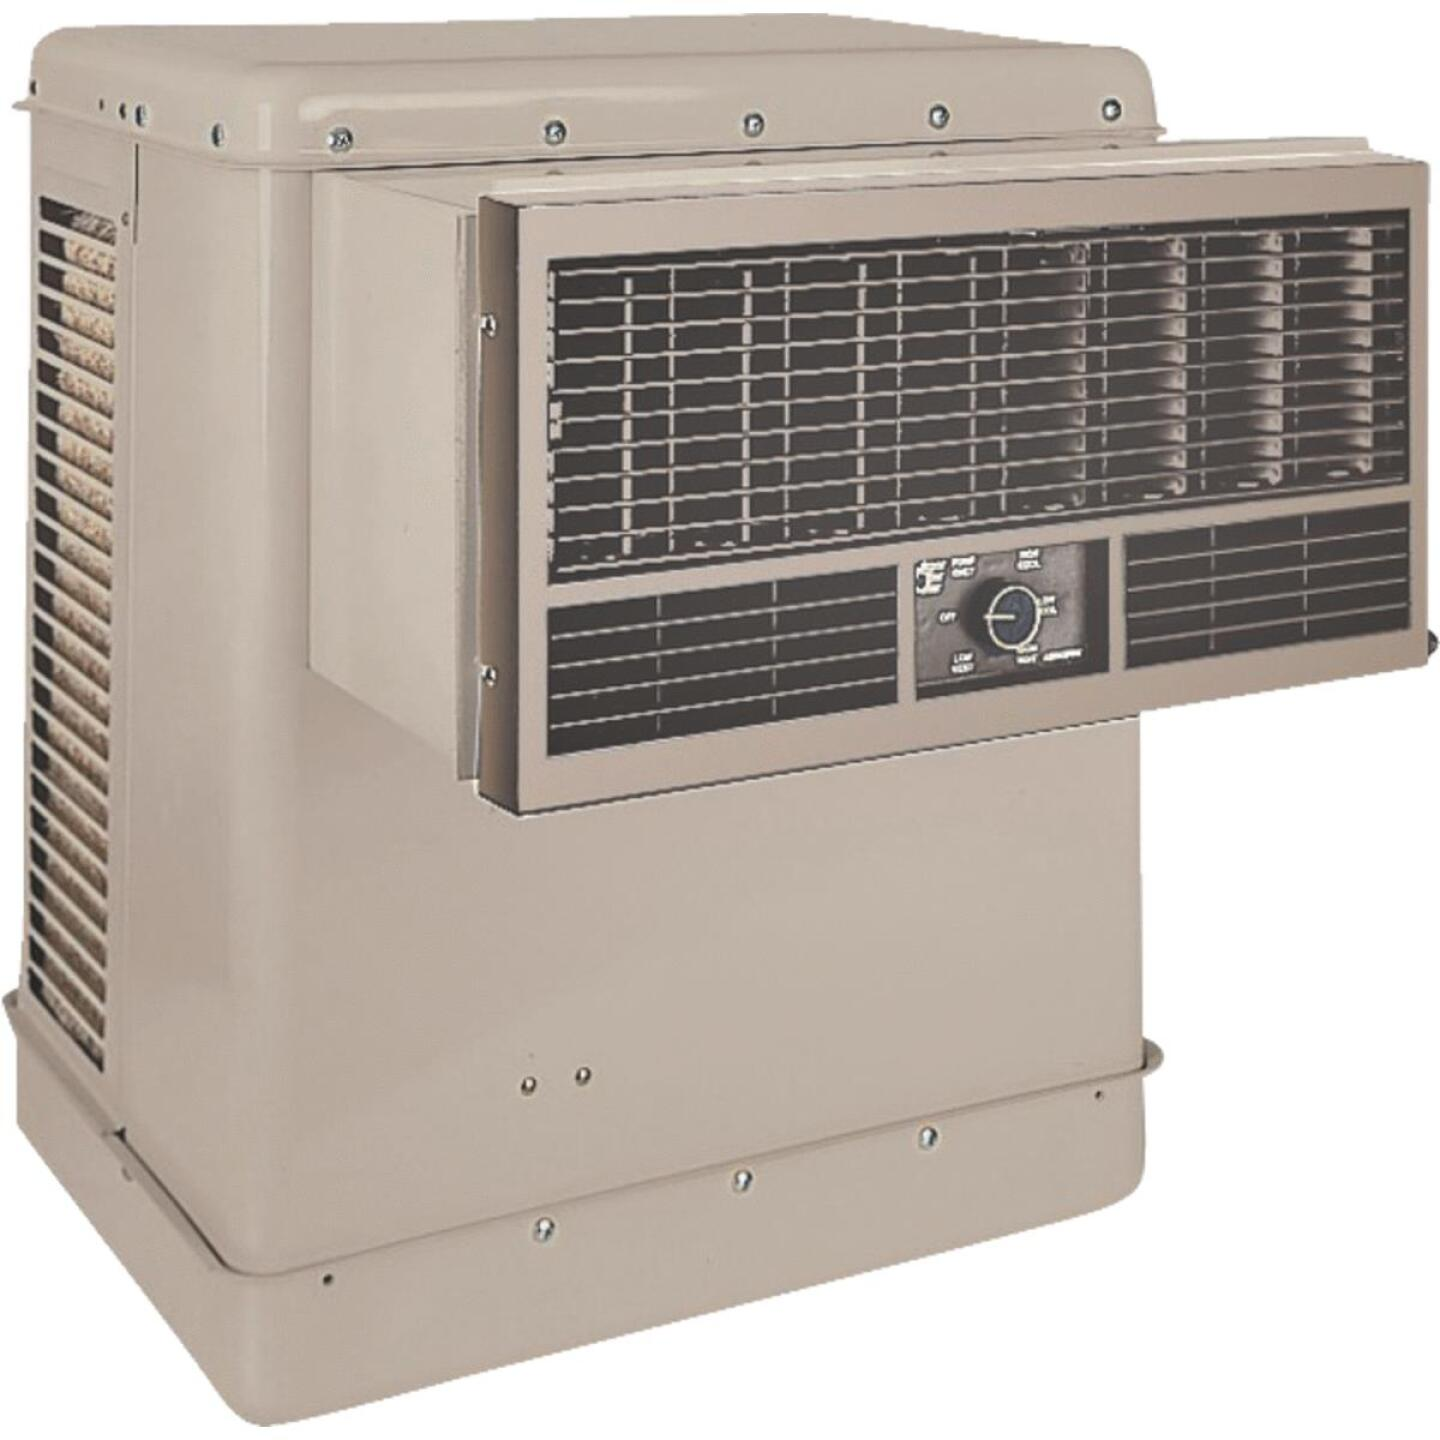 Essick 2800 CFM Front Discharge Window Evaporative Cooler, 400-600 Sq. Ft. Image 1